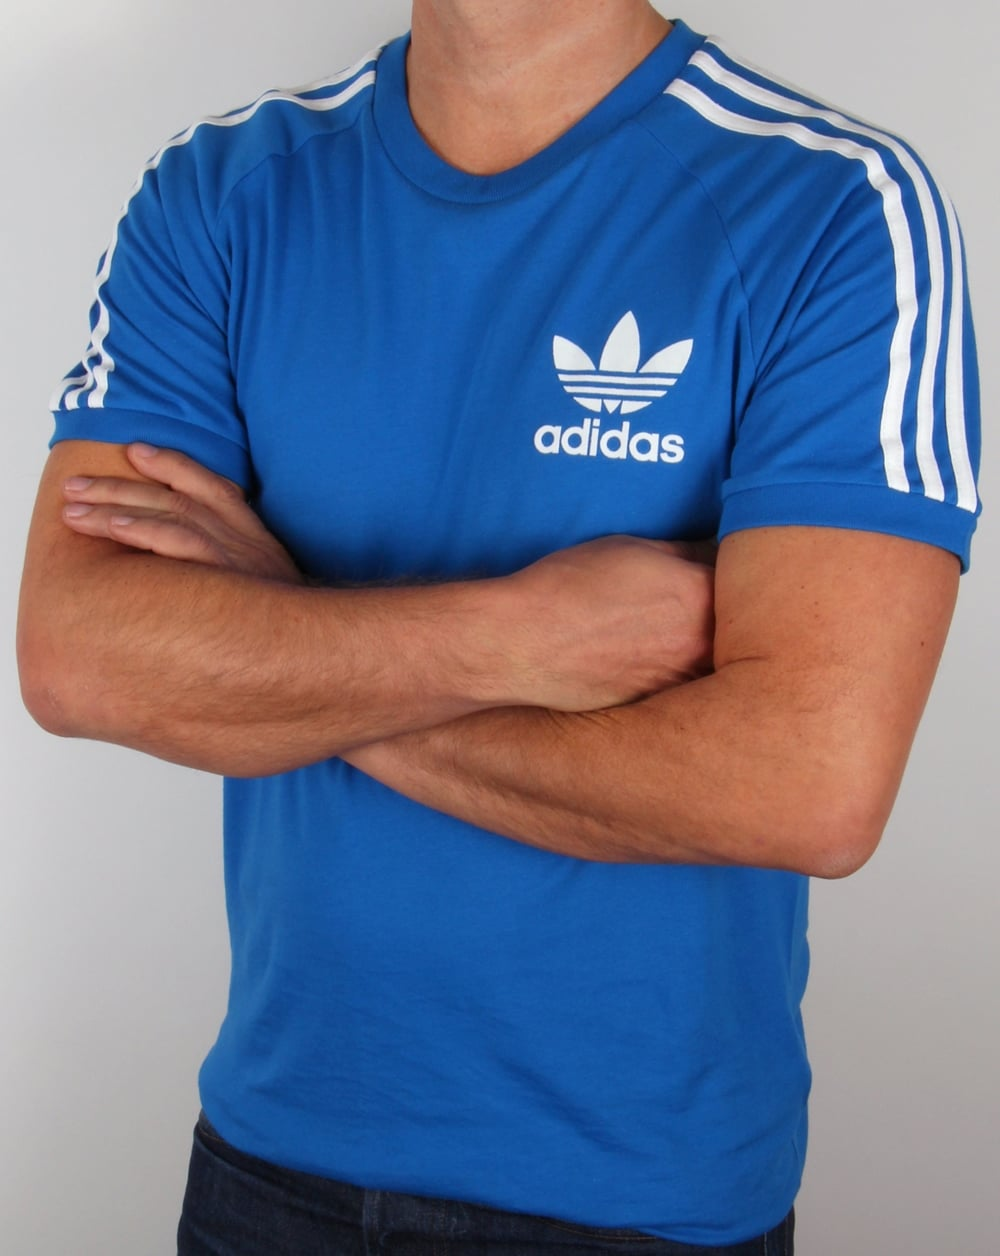 Bluebird T Blue shirt Originals Adidas 3 Stripes v4O8q7n4